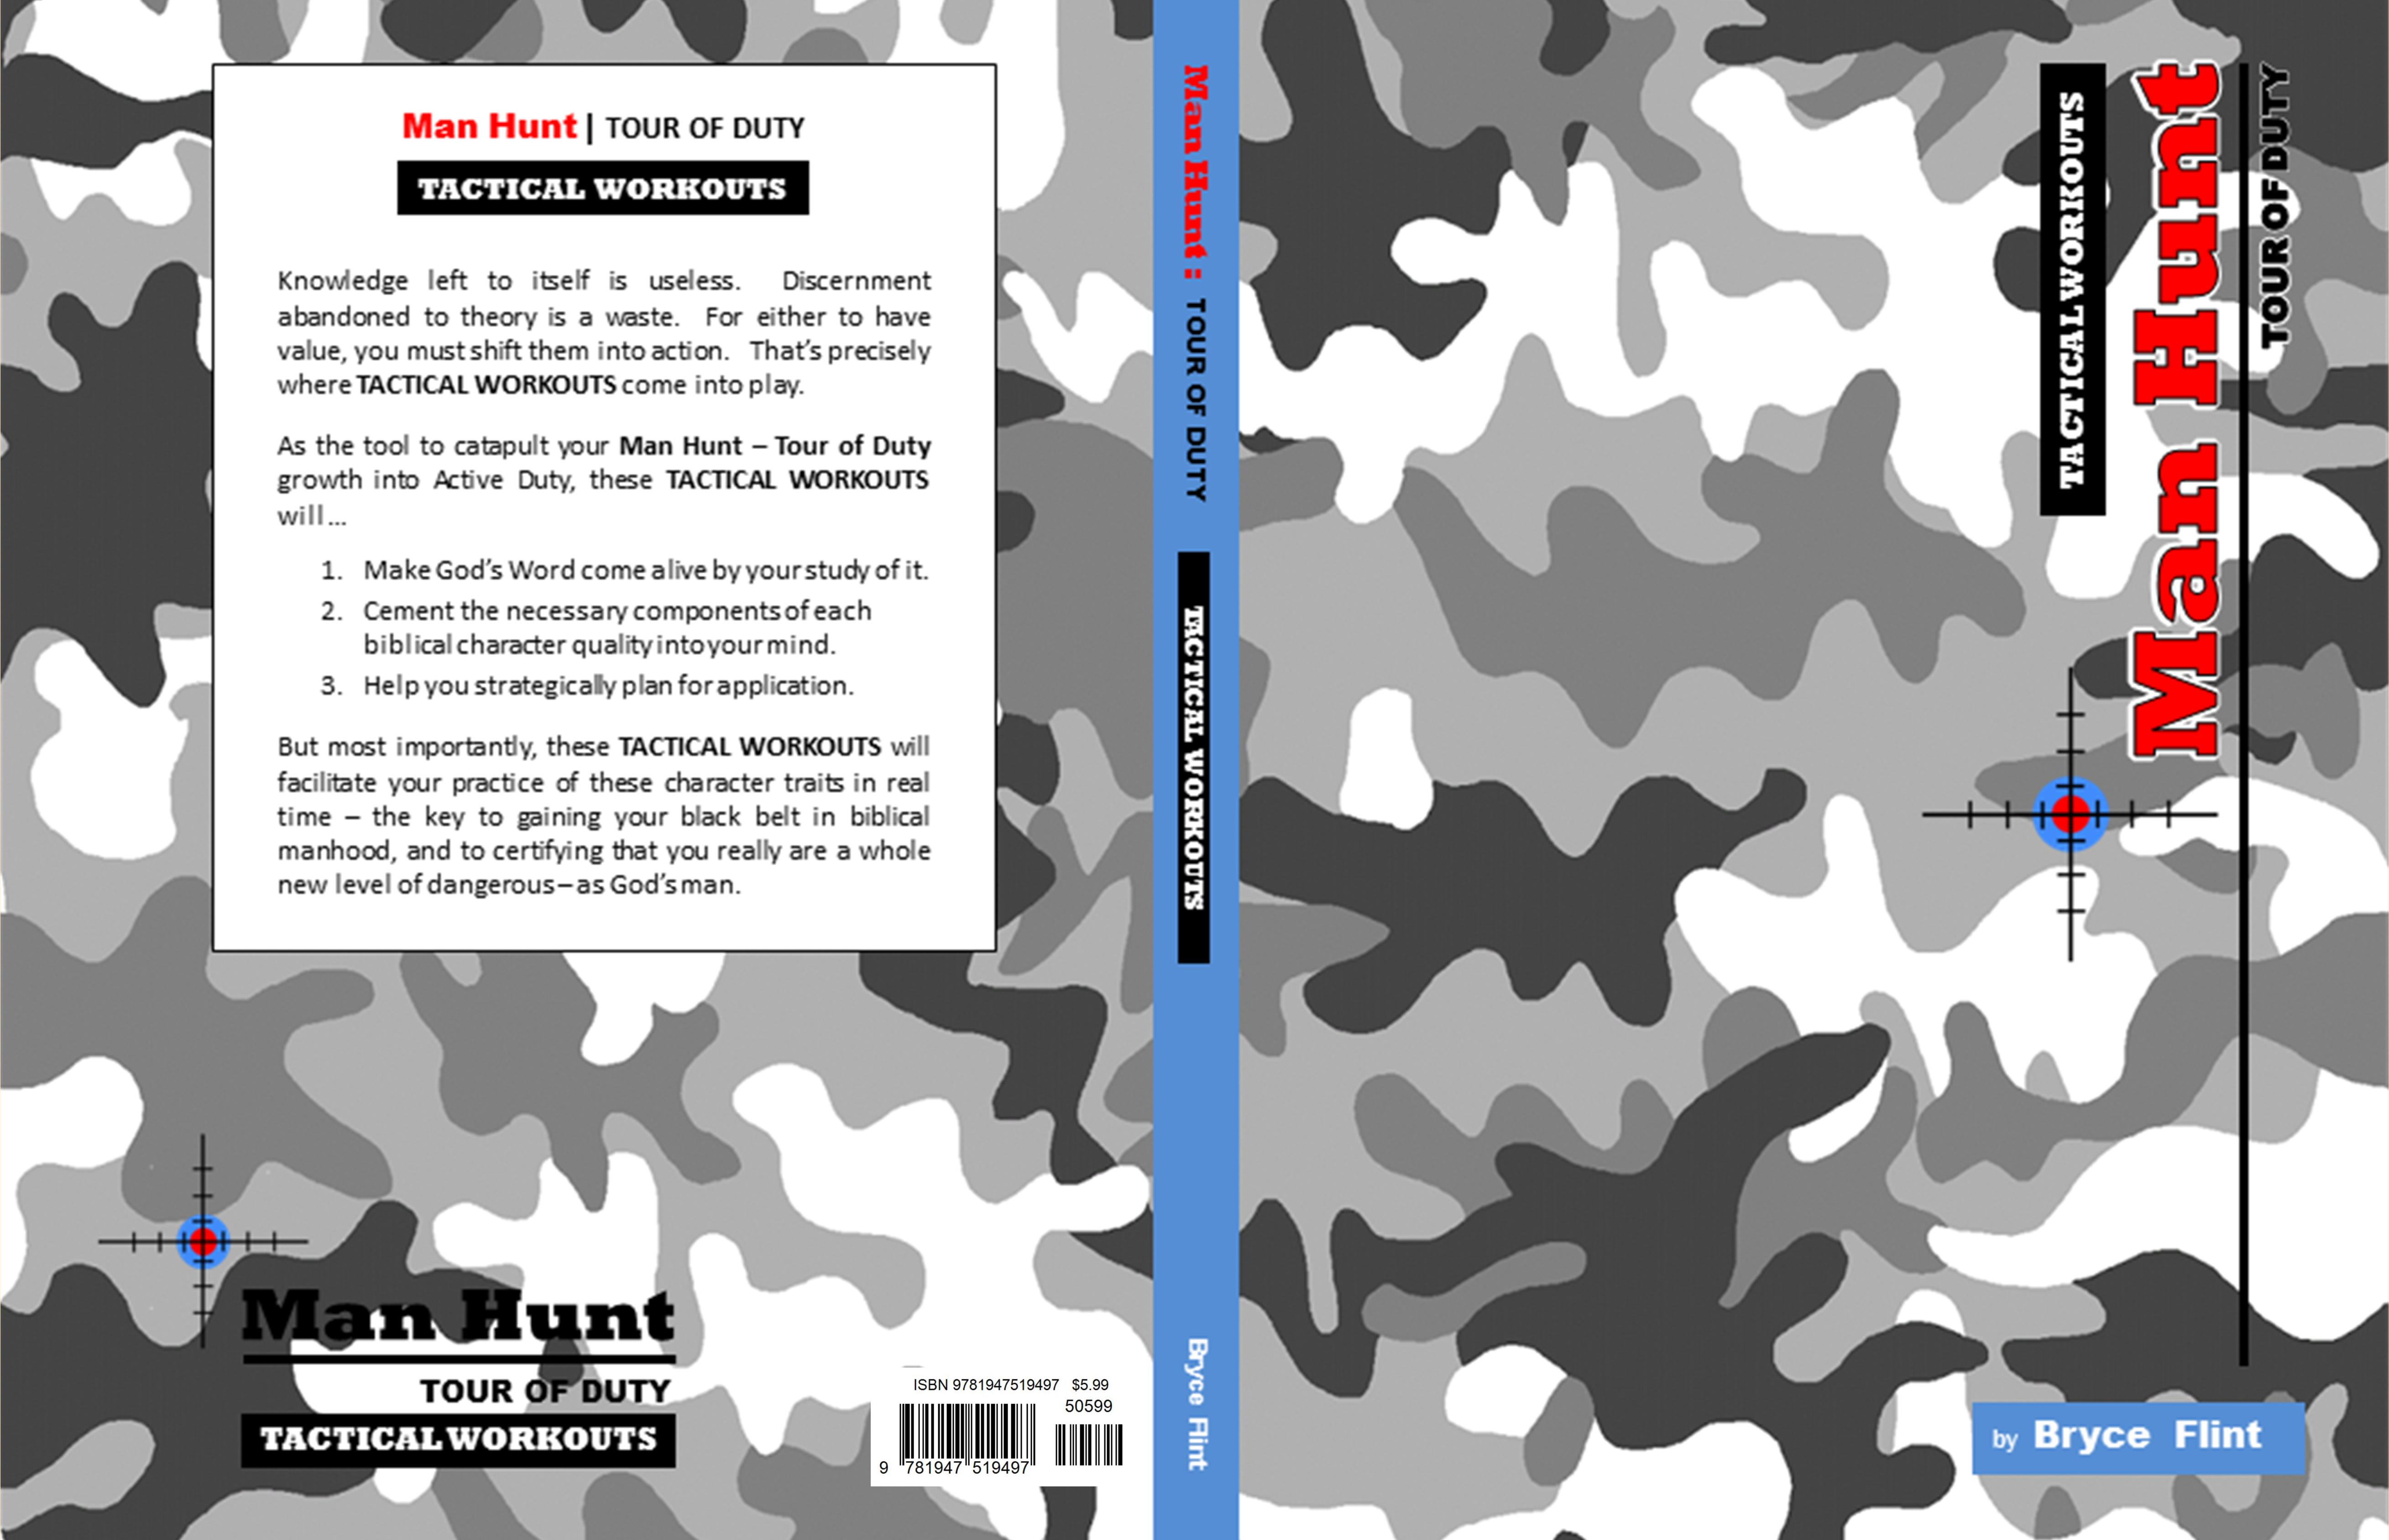 Man Hunt | Tour of Duty -- TACTICAL WORKOUTS cover image